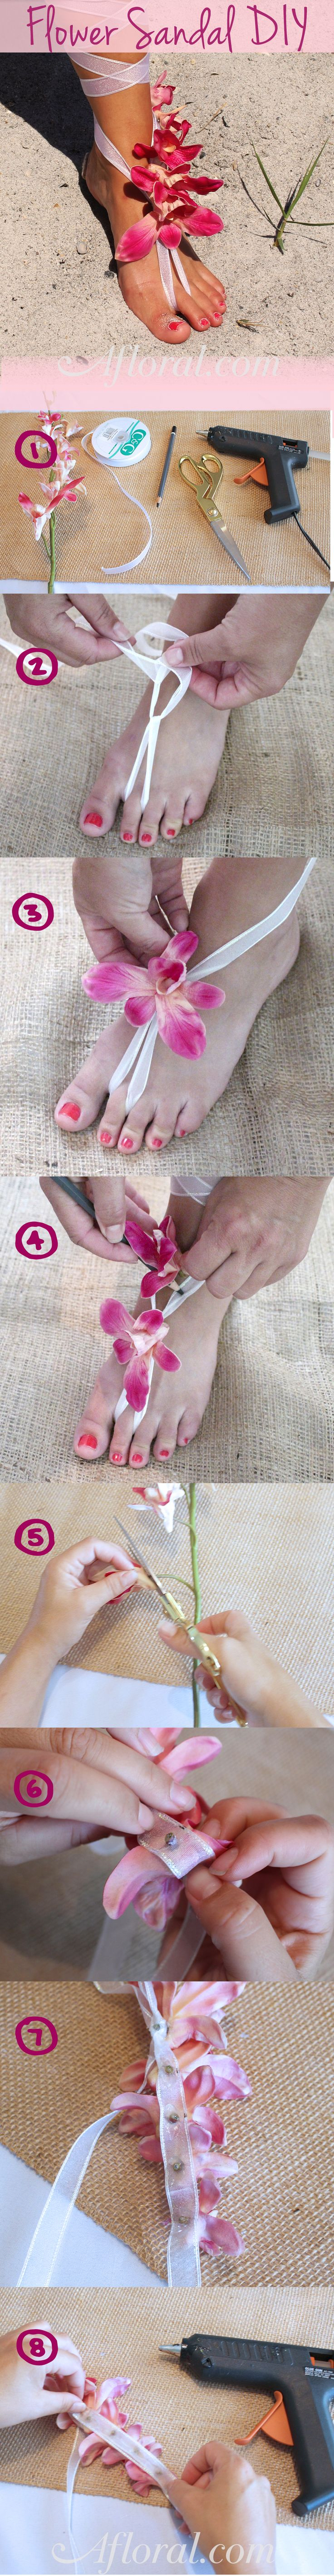 DIY Beach Flower Sandal. Create your own fabulous footwear for your walk down the aisle. Follow the simple tutorial from Afloral.com and step out in style!